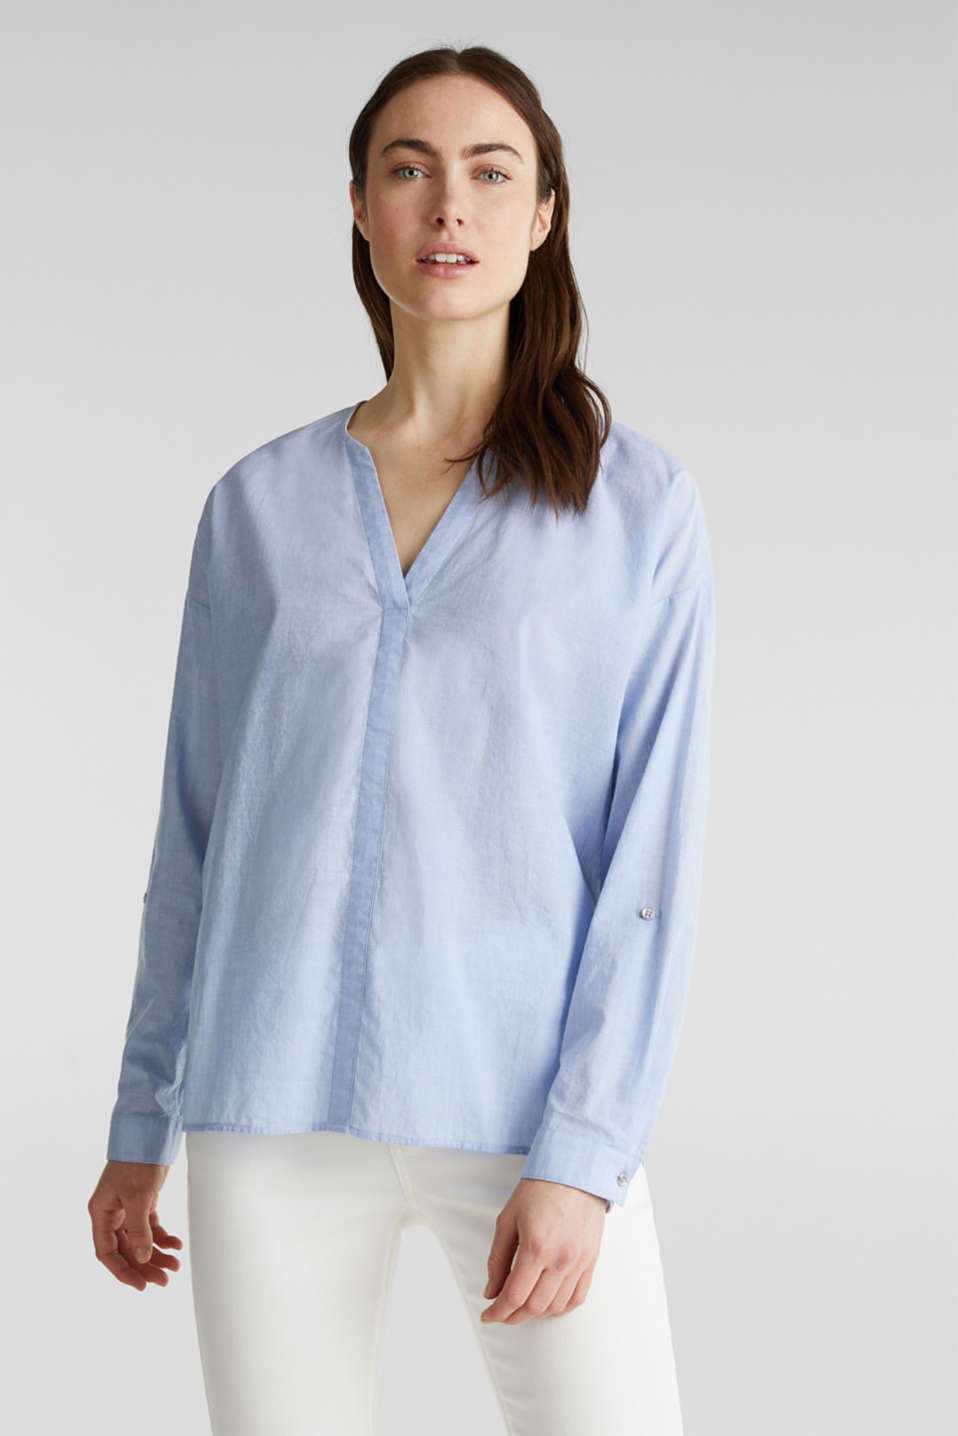 Blouse with turn-up sleeves, 100% cotton, LIGHT BLUE, detail image number 0